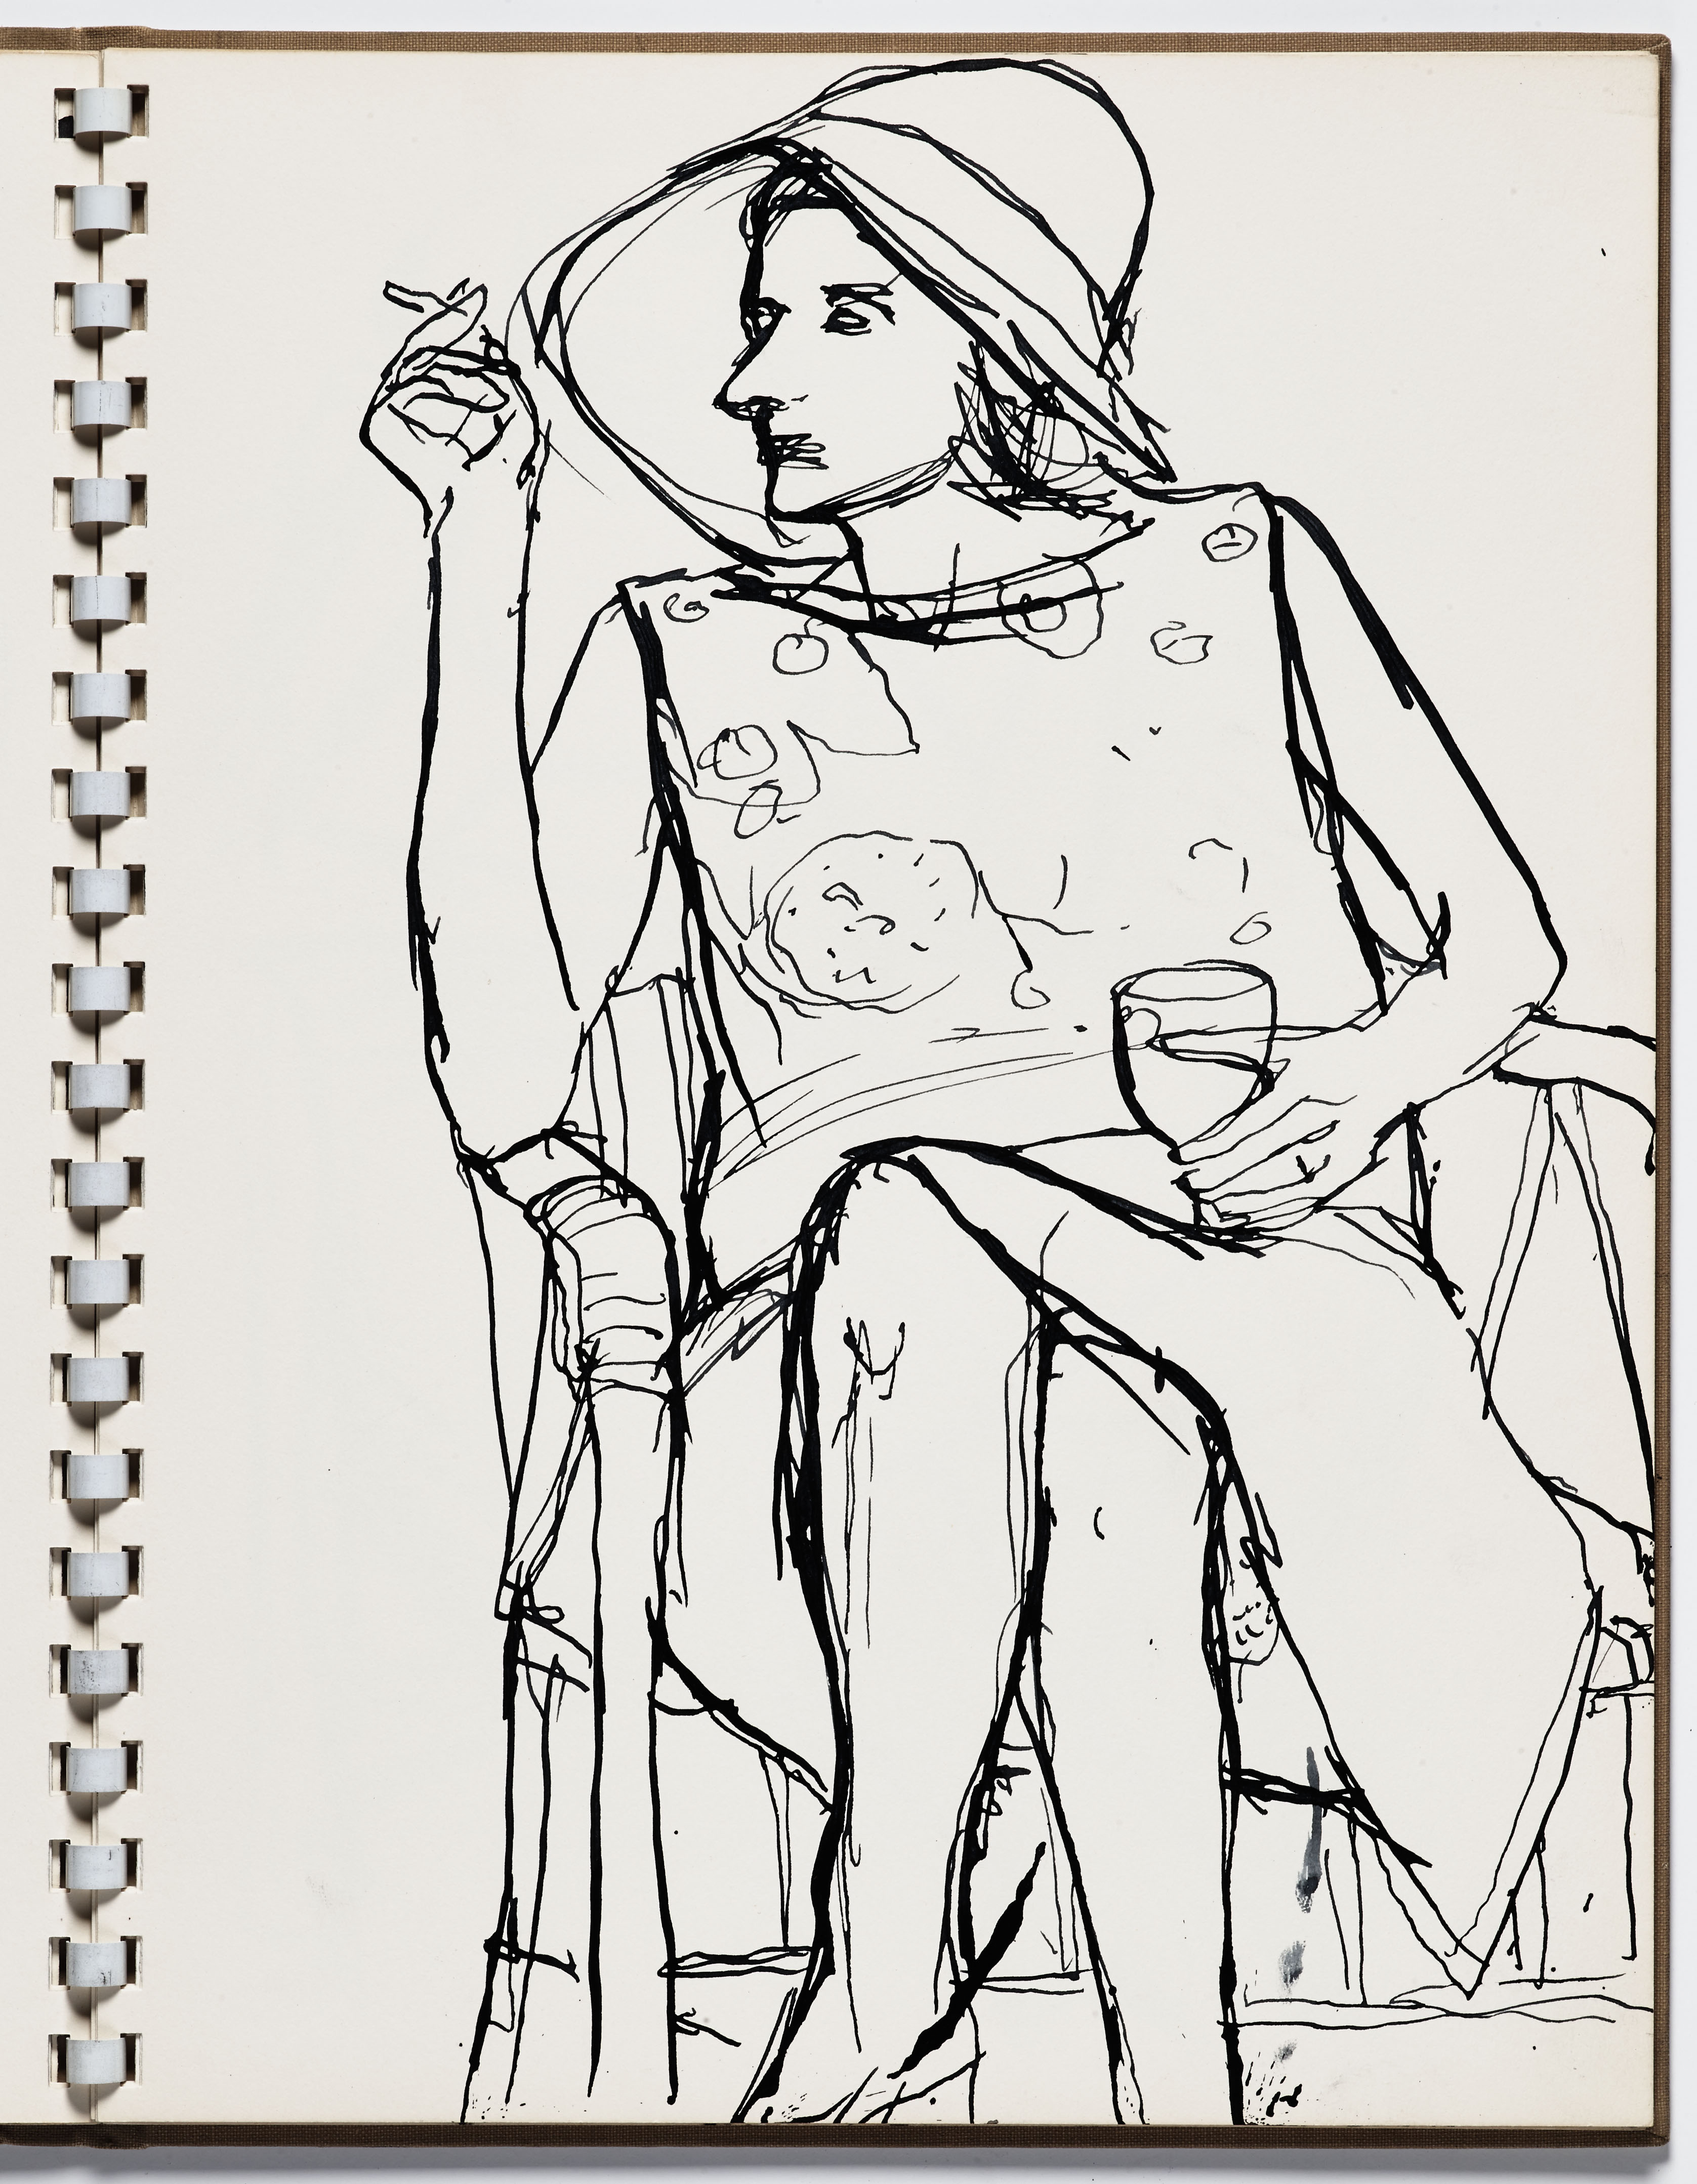 Richard Diebenkorn (U.S.A., 1922–1993), Untitled from Sketchbook #13, page 13, c. 1965–66. Pen and ink on paper.